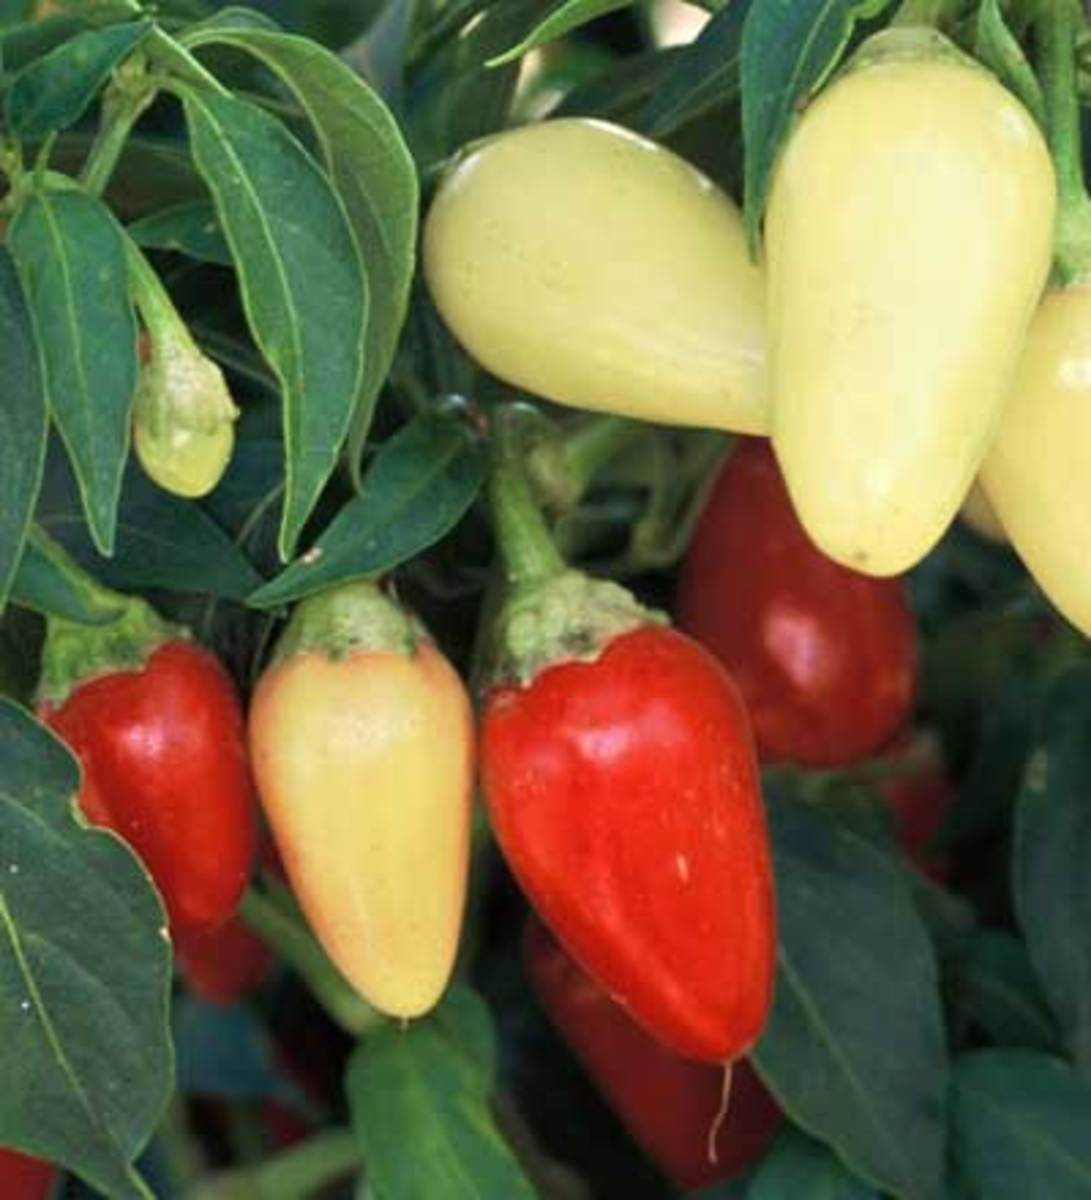 Cascabella - A favorite for pickling, this pepper is generally used in its yellow stage, but it will turn red when left on the plant. Cone shaped, 1-1/4 inch long peppers range from 1,500 to 4,000 Scoville units.